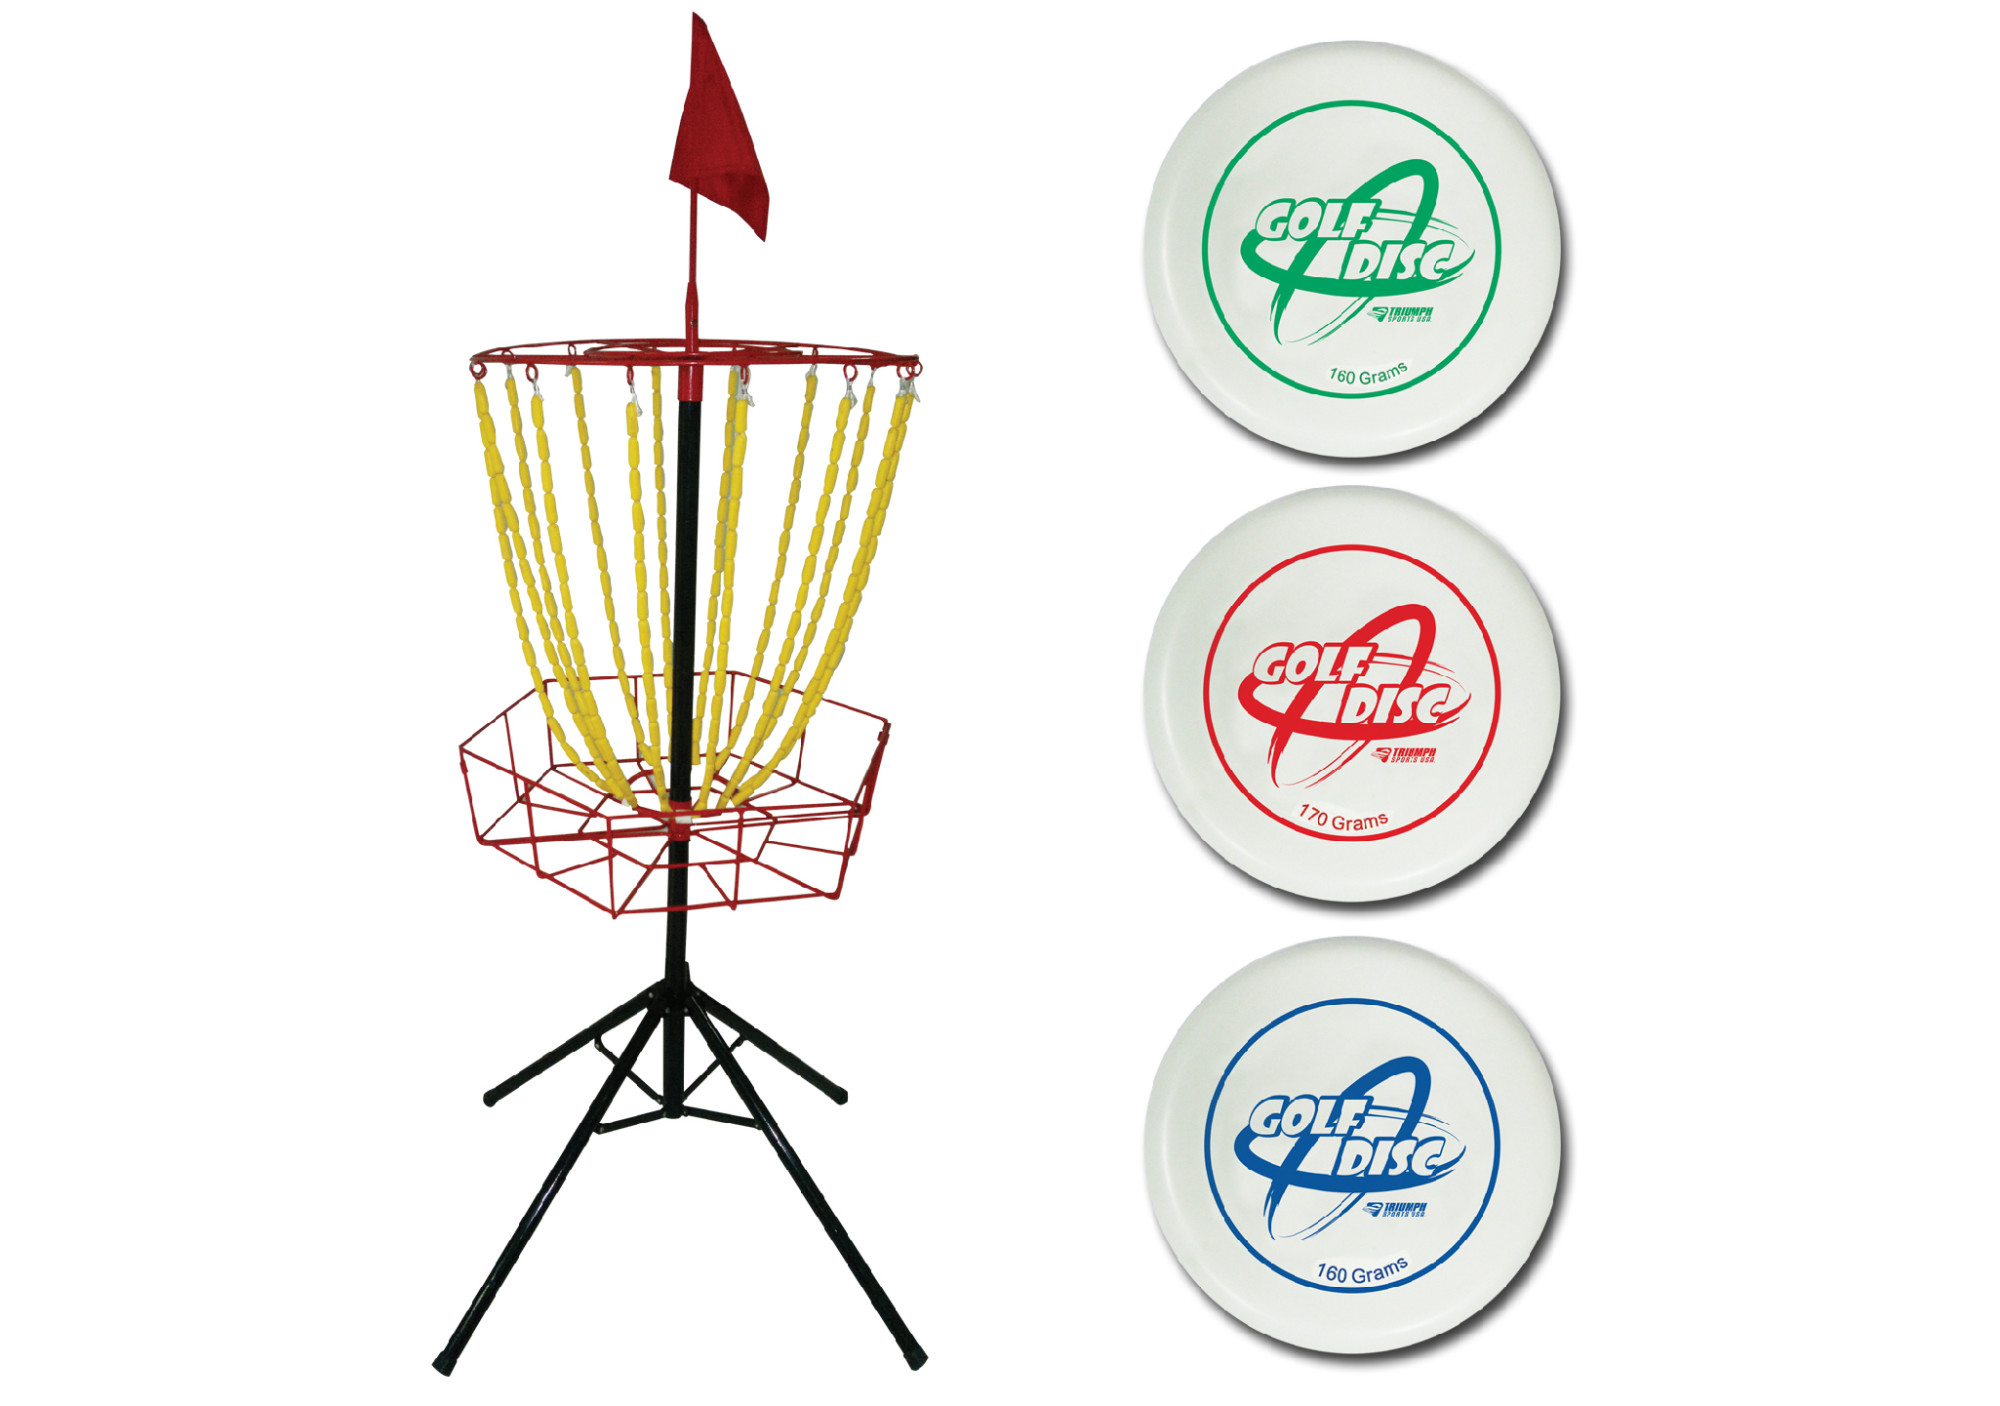 Triumph Disc Golf Toss Steel Portable Target and Three Weighted Golf Discs (160g, 170g, 180g) by Triumph